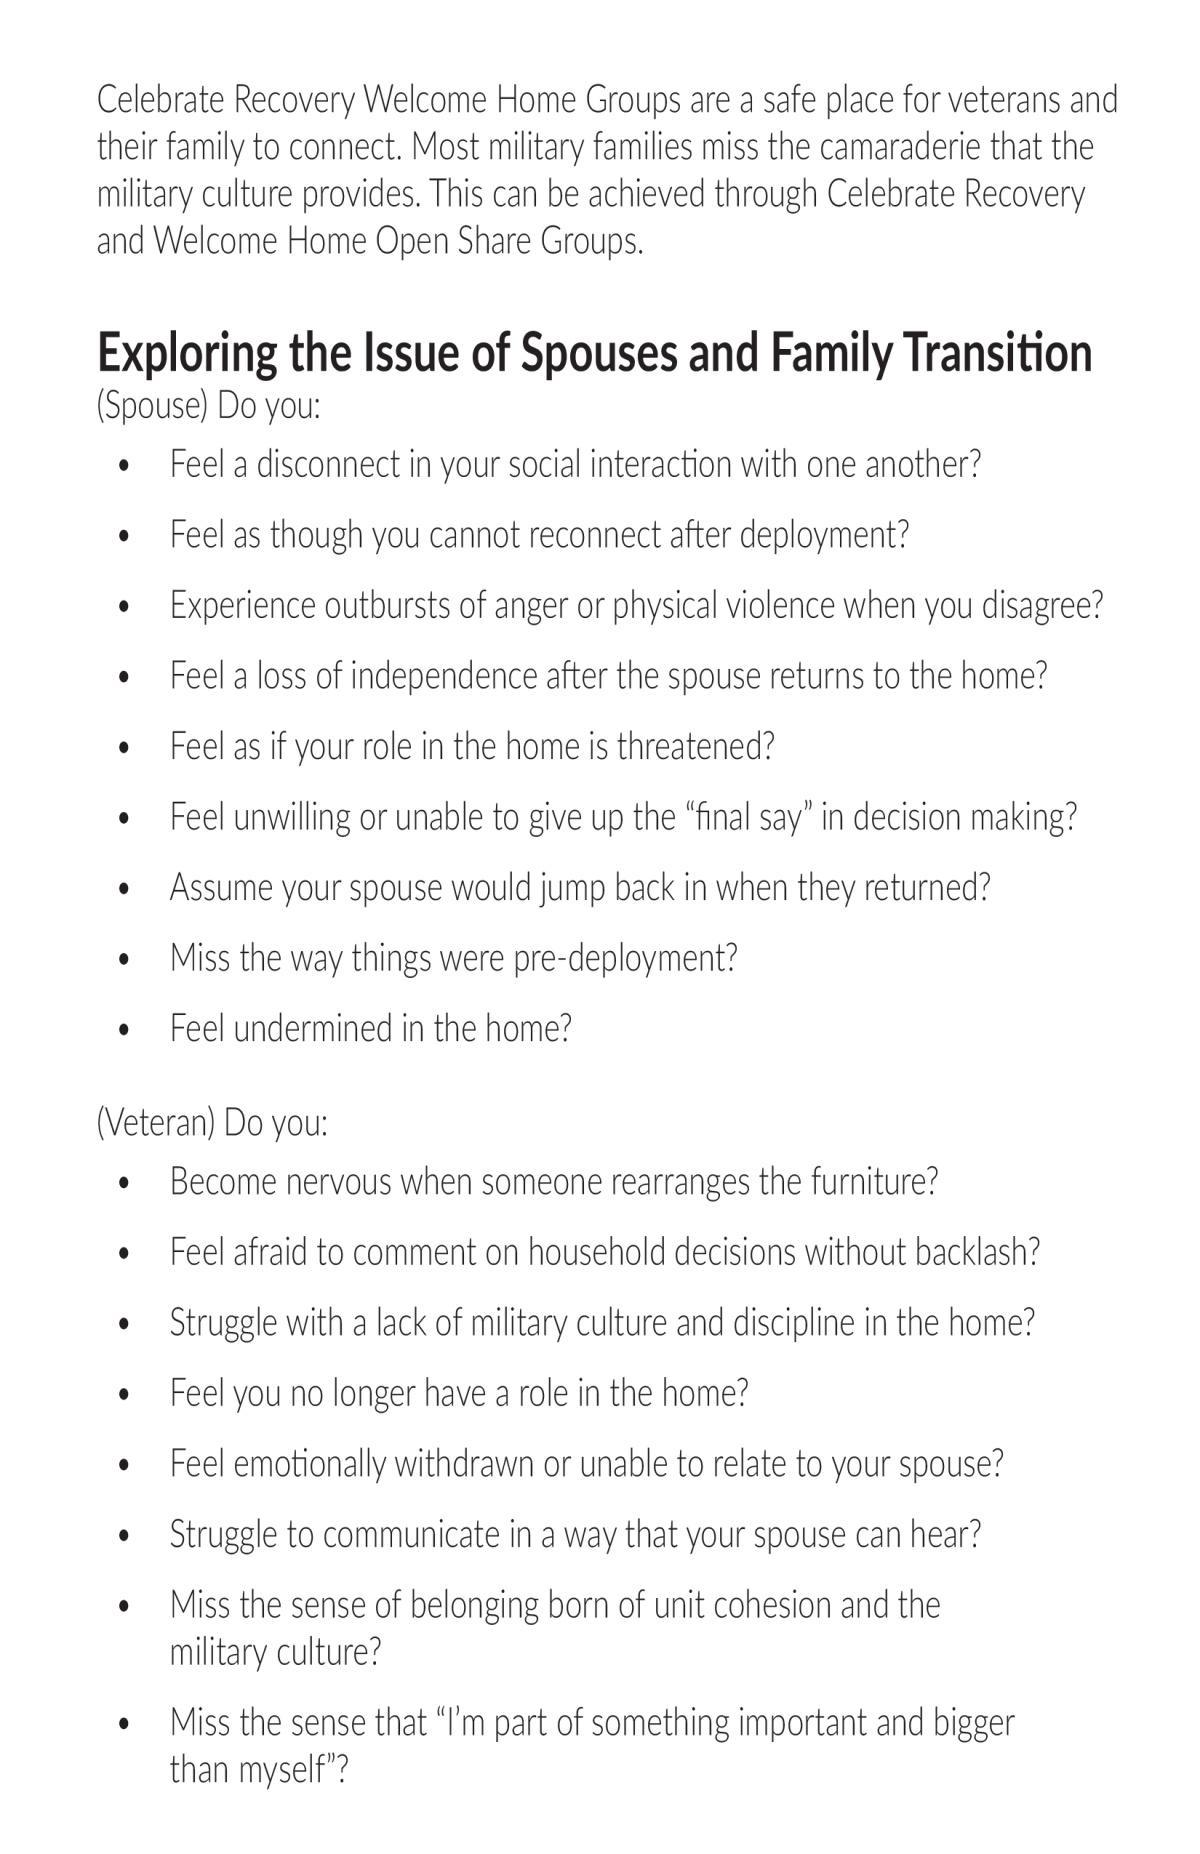 Welcome Home Veterans - Spouses and Family Transition